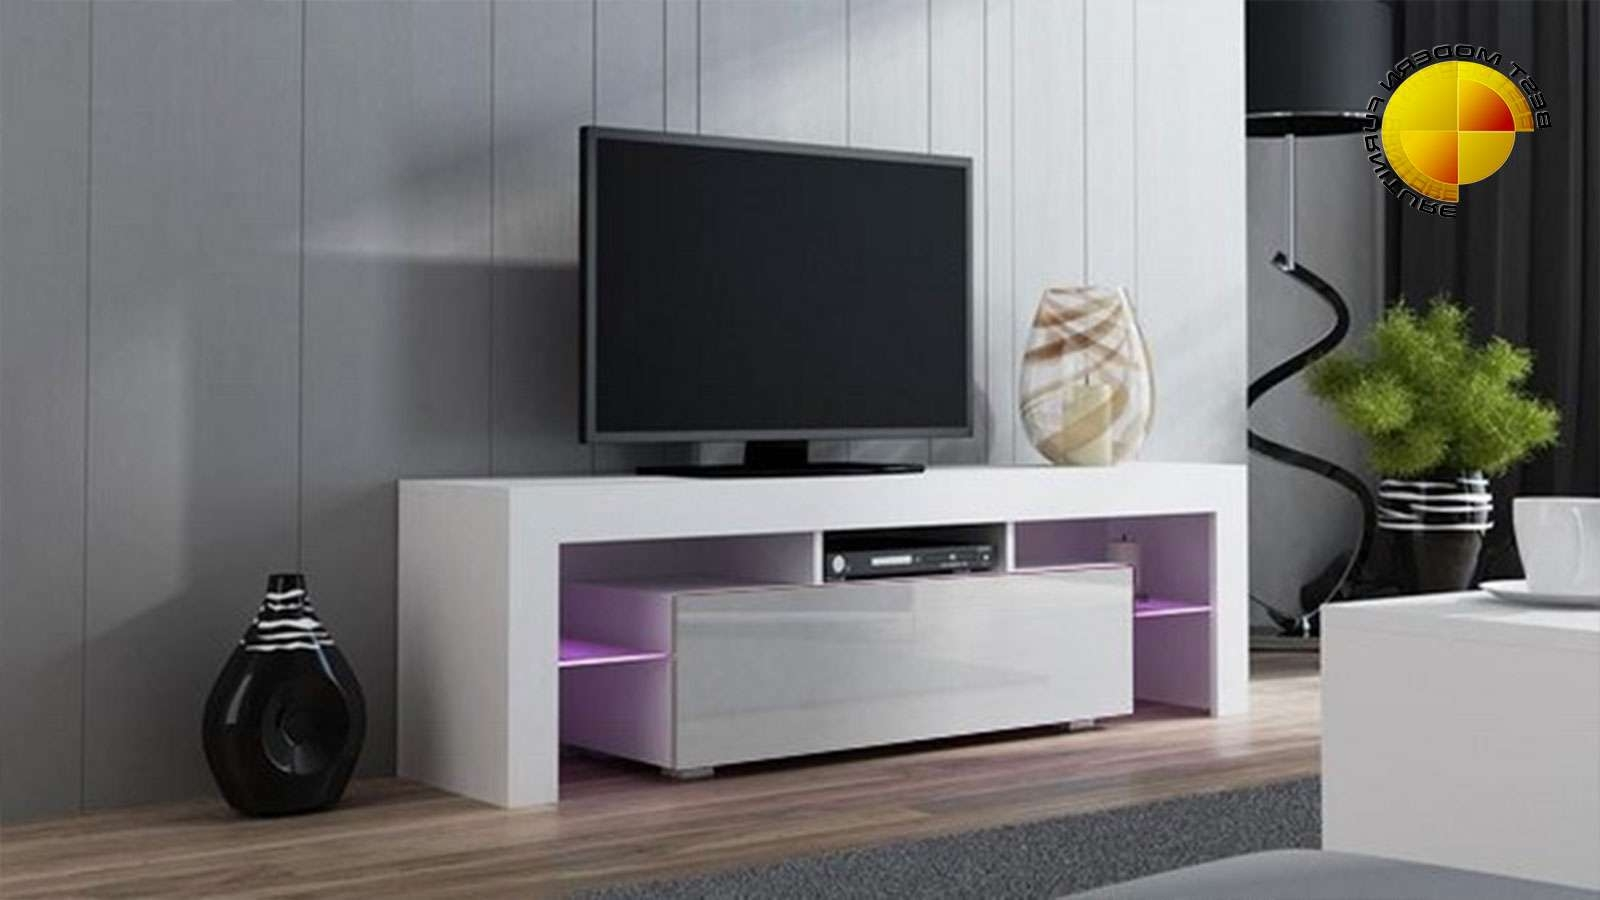 Modern Tv Stand 160Cm High Gloss Cabinet Rgb Led Lights White Unit With Regard To Gloss Tv Stands (View 11 of 15)